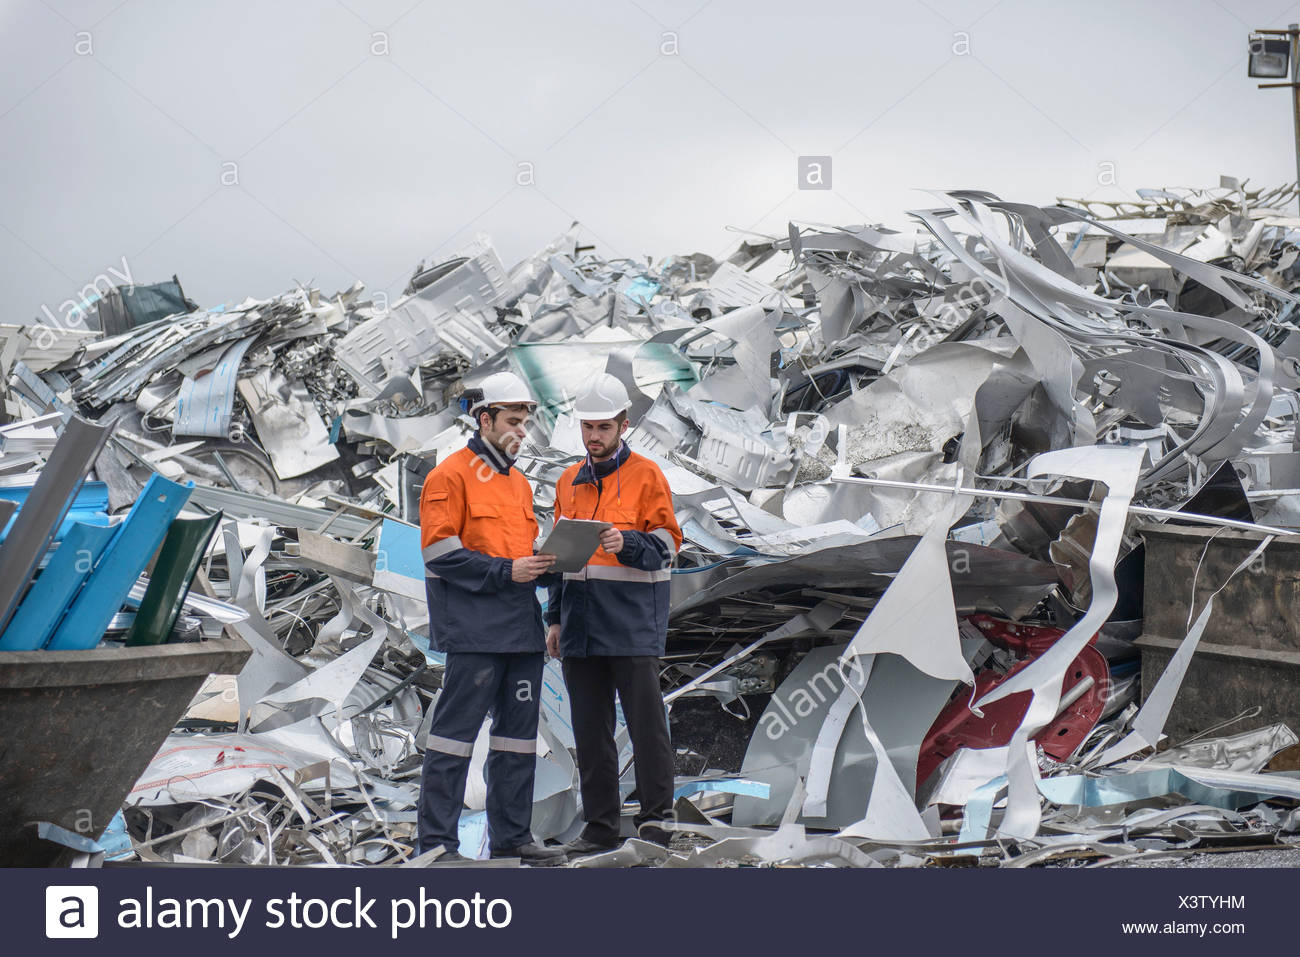 Two workers looking at clip board in front of scrap aluminum - Stock Image